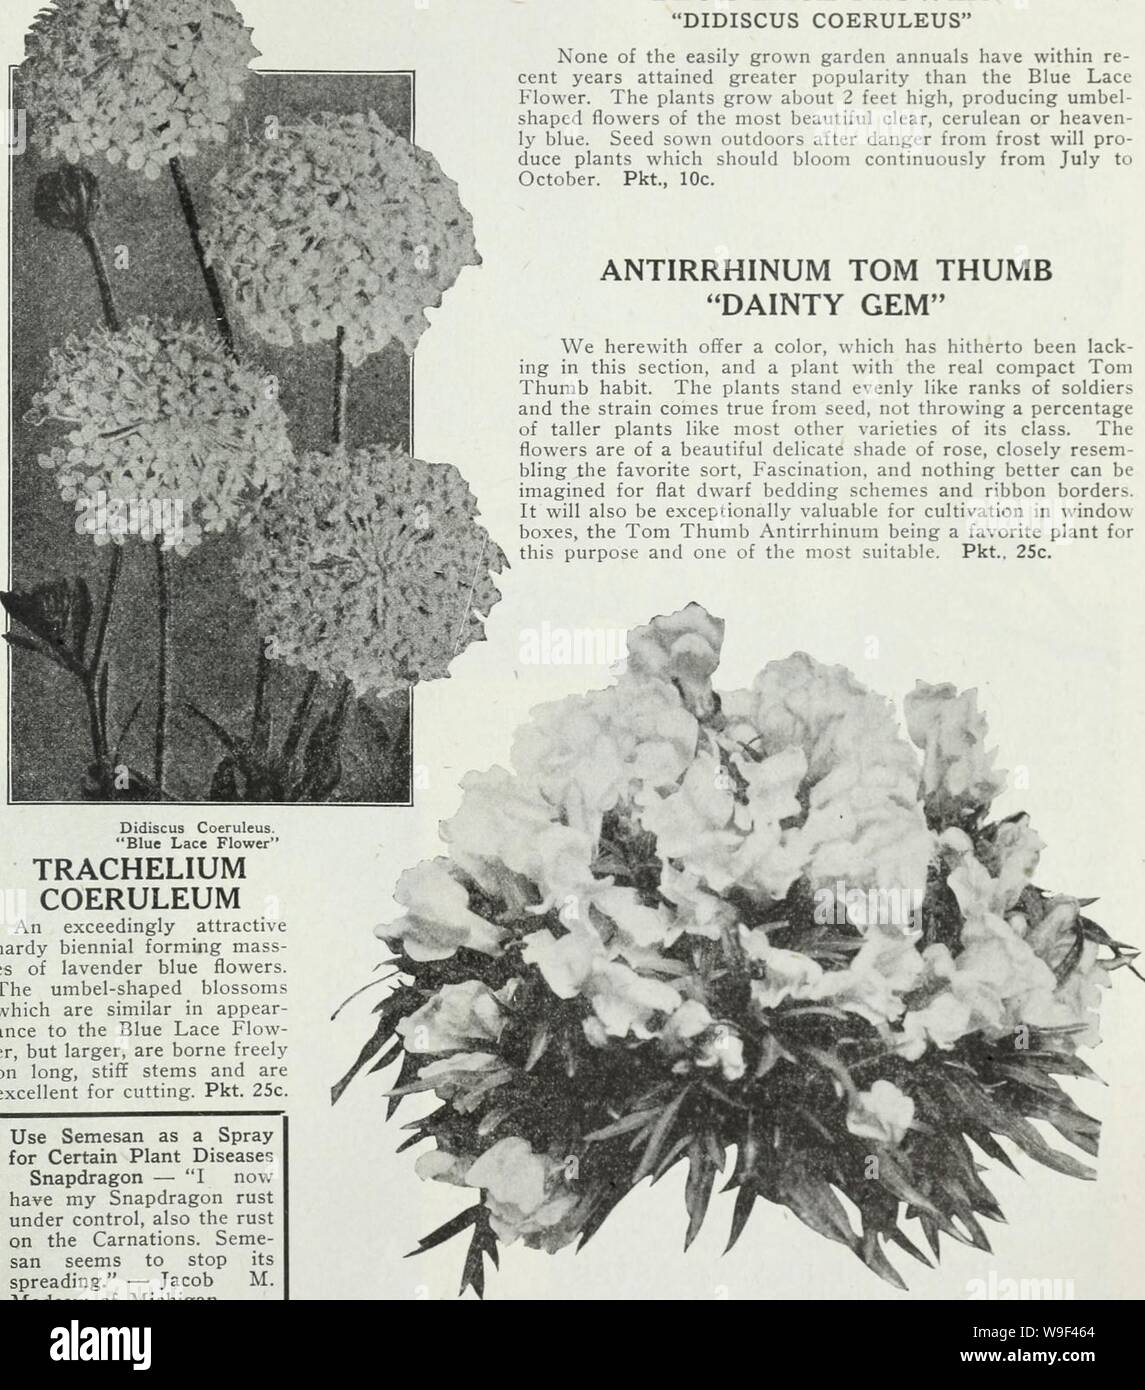 Archive image from page 14 of Currie's farm and garden annual. Currie's farm and garden annual : spring 1930  curriesfarmgarde19curr Year: 1930 ( Didiscus Coeruleus. 'Blue Lace Flower' TRACHELIUM COERULEUM An exceedingly attractive hardy biennial forming mass- es of lavender blue flowers. The umbel-shaped blossoms which are similar in appear- ance to the Blue Lace Flow- er, but larger, are borne freely on long, stiff stems and are excellent for cutting. Pkt. 25c. Use Semesan as a Spray for Certain Plant Diseases Snapdragon — 'I now have my Snapdragon rust under control, also the rust on the Ca Stock Photo